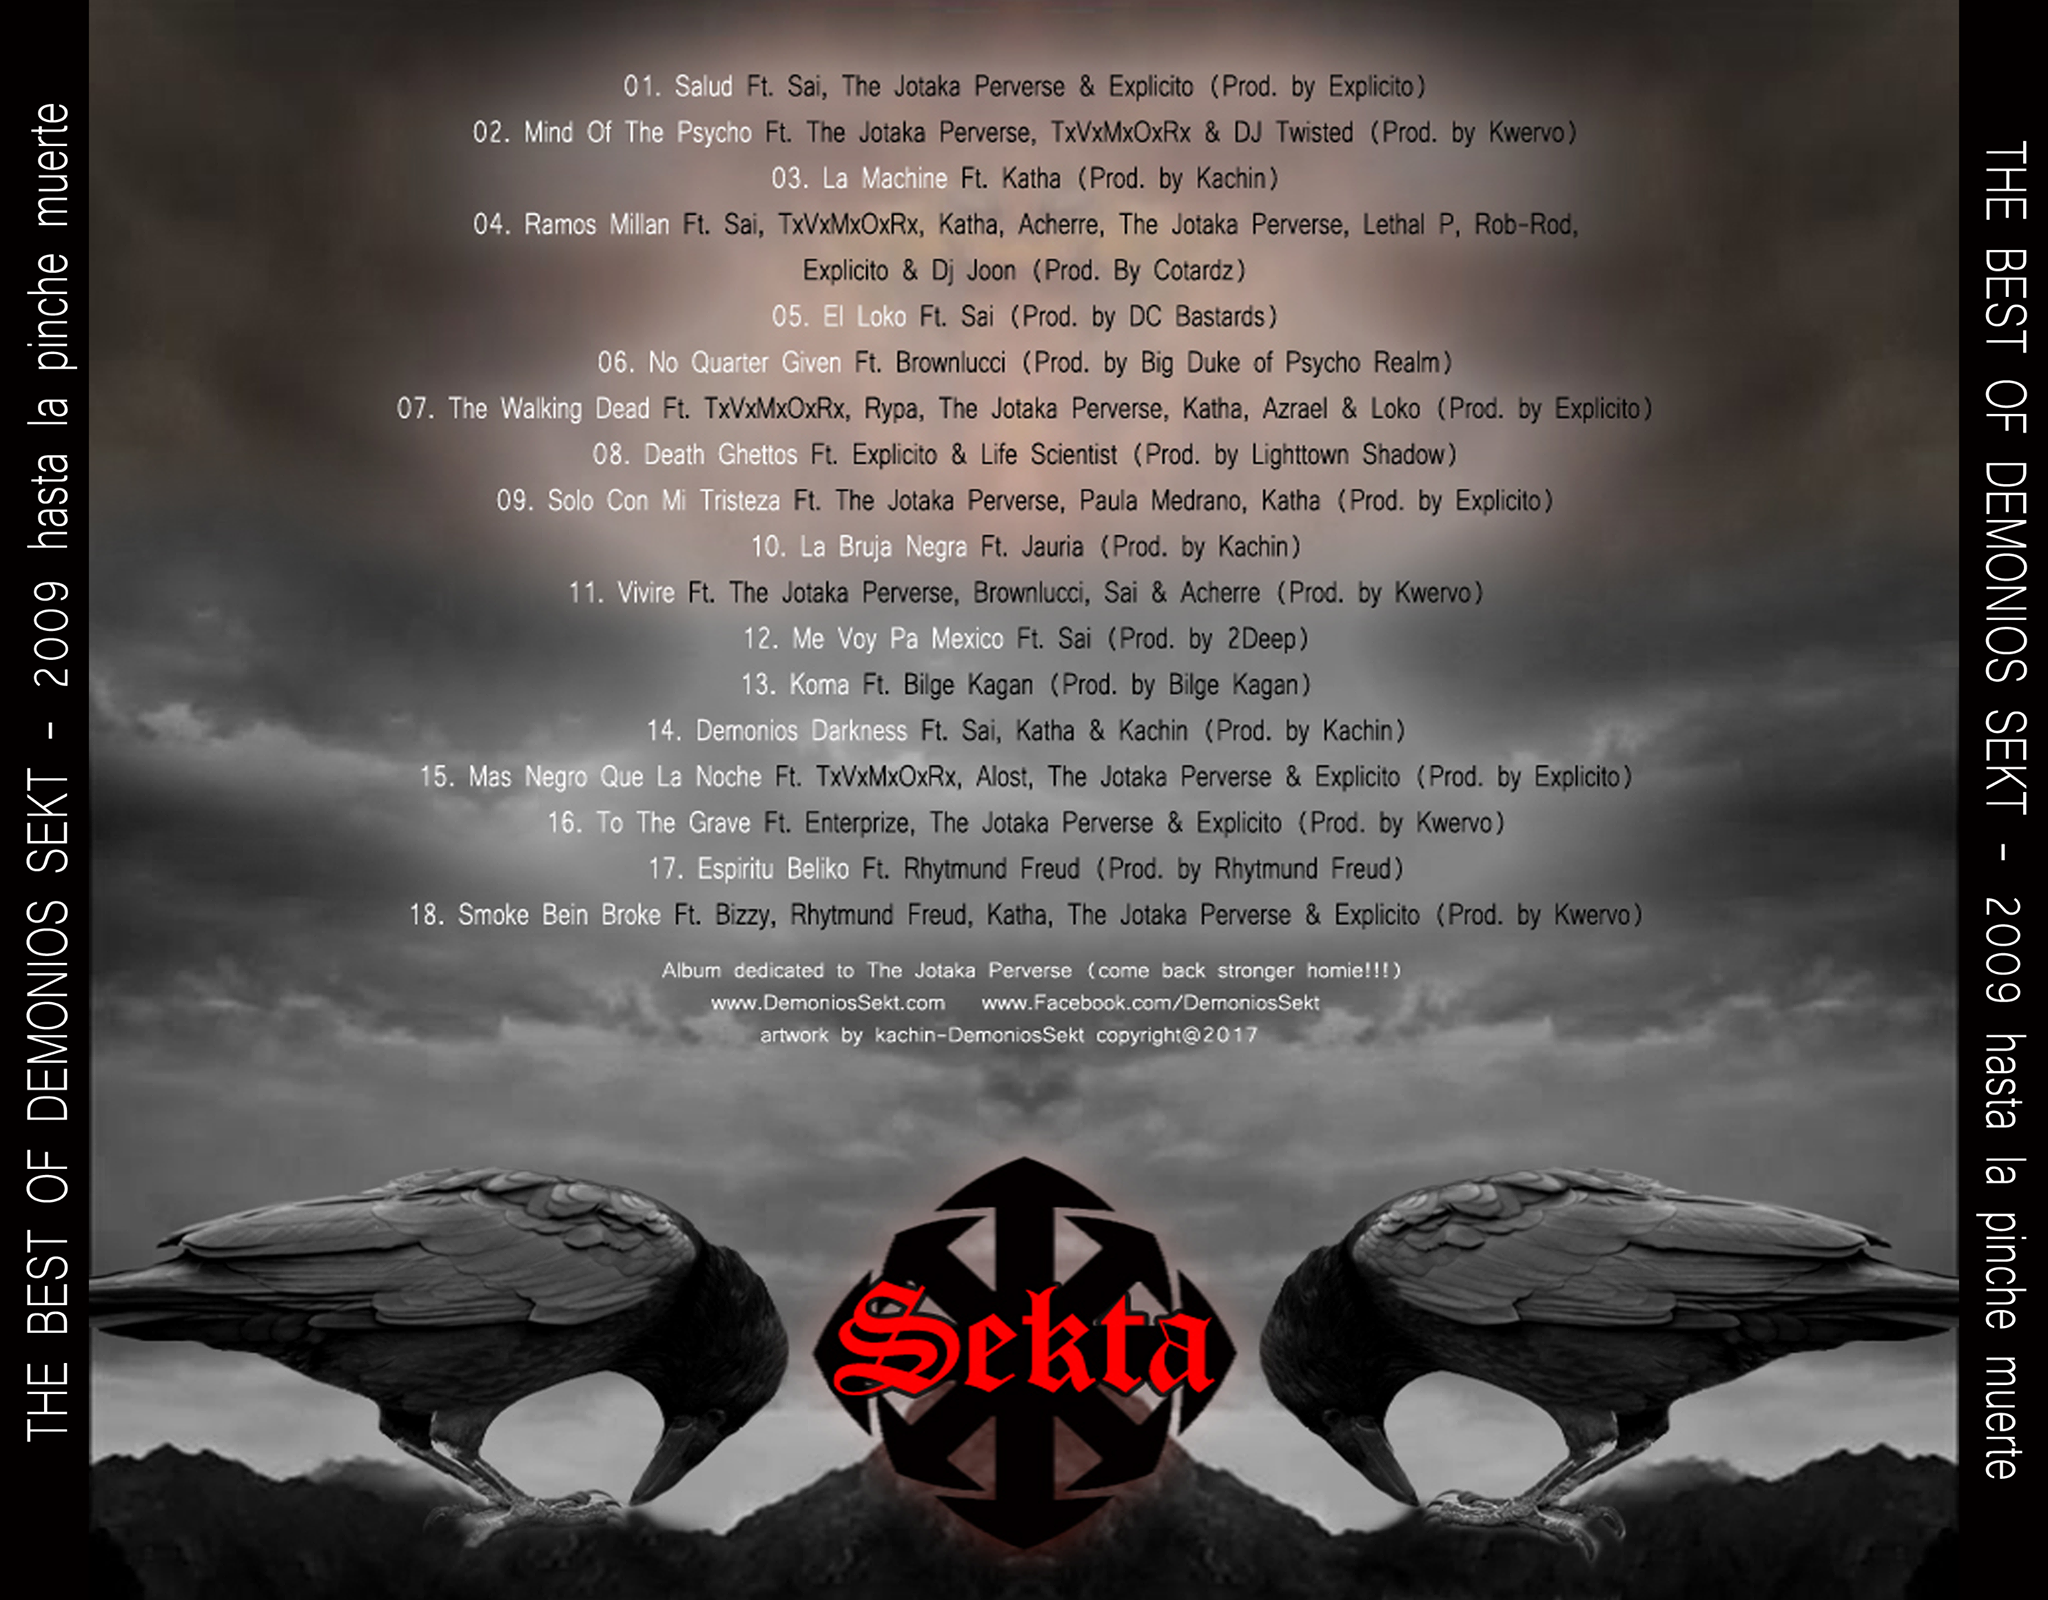 sekta-back-cover